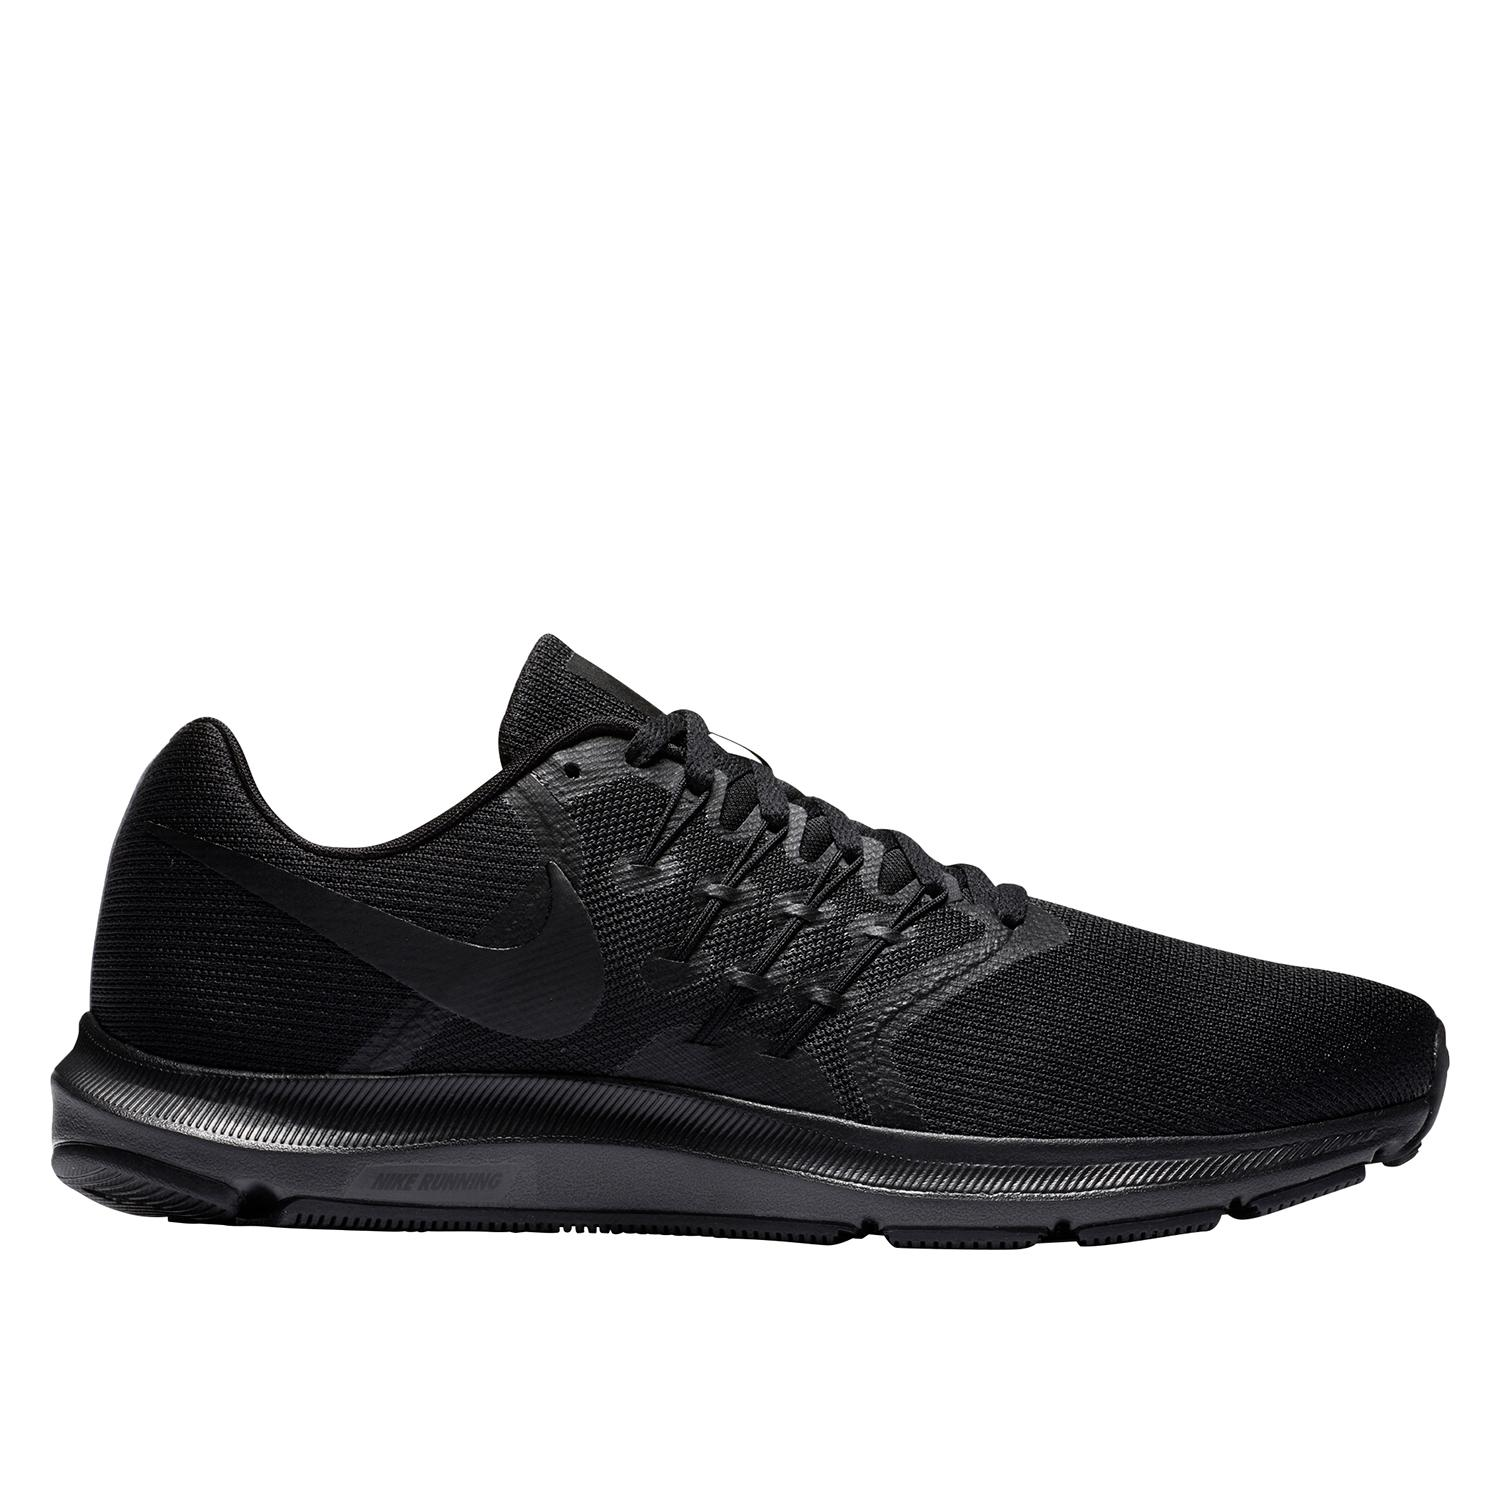 3cc04b78868 ... 908989-600  website for a bunch of shoes on sale Nike Run Swift Mens  Running Shoe in Black ...